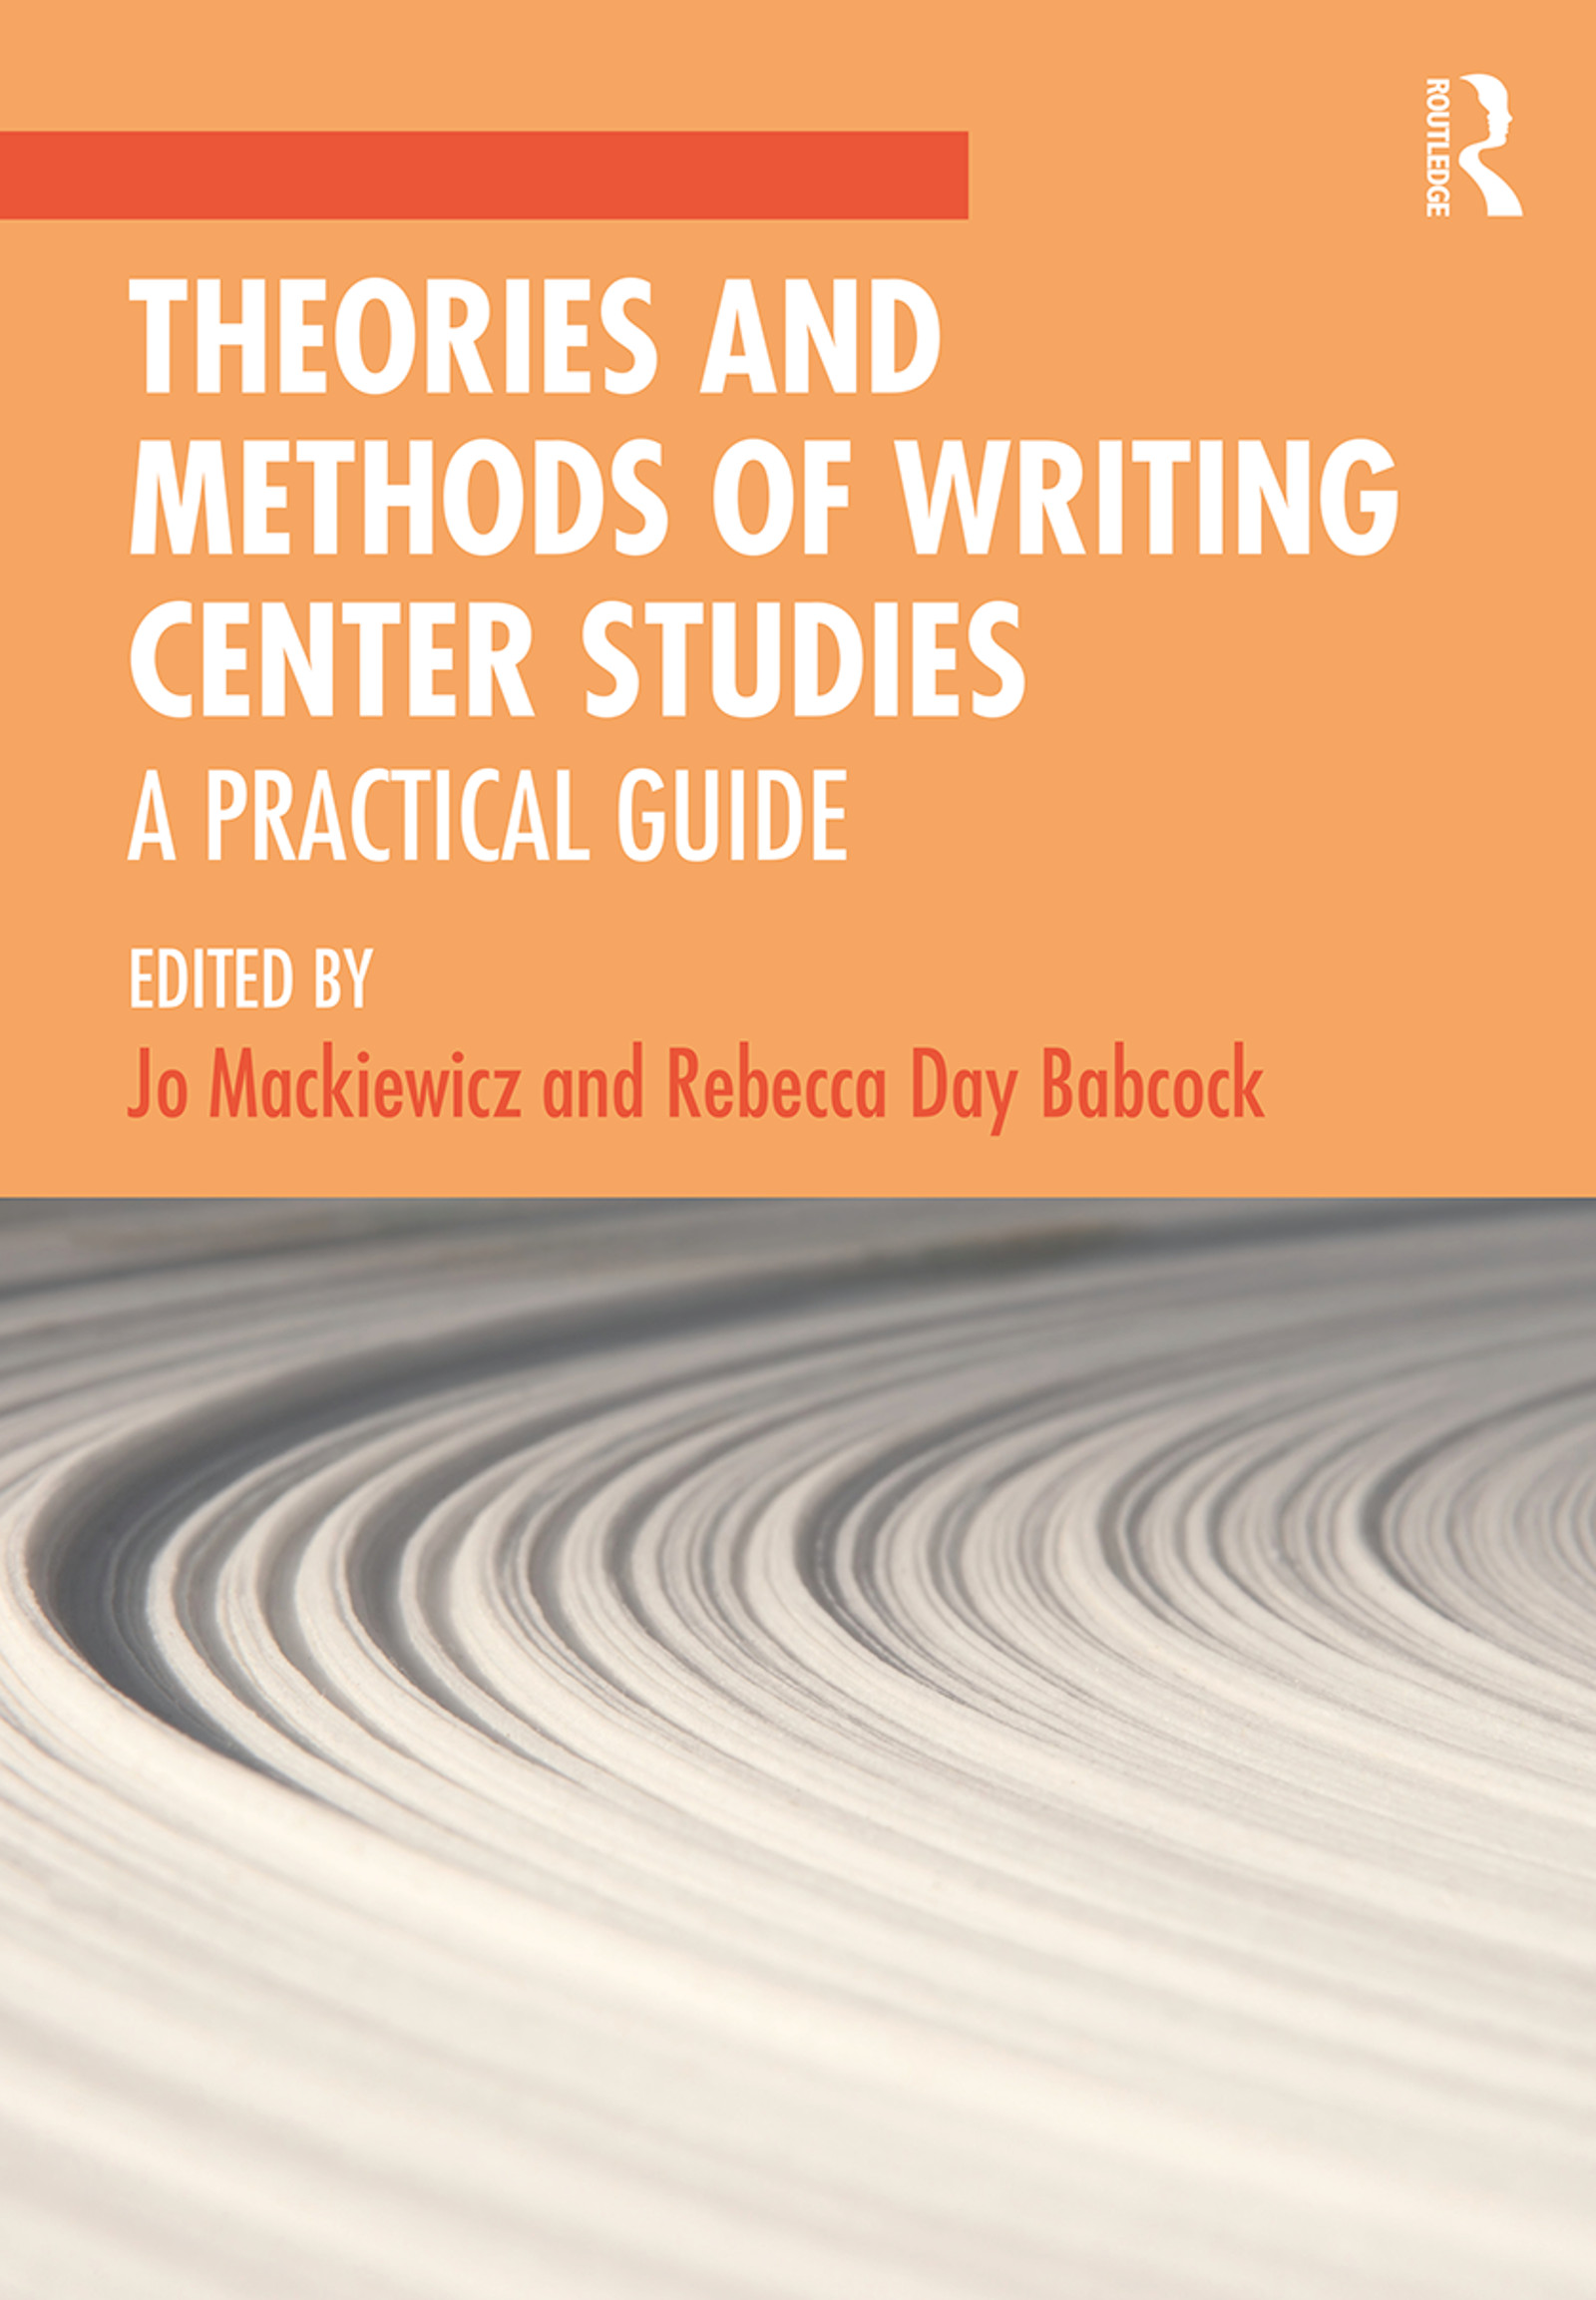 Theories and Methods of Writing Center Studies: A Practical Guide book cover